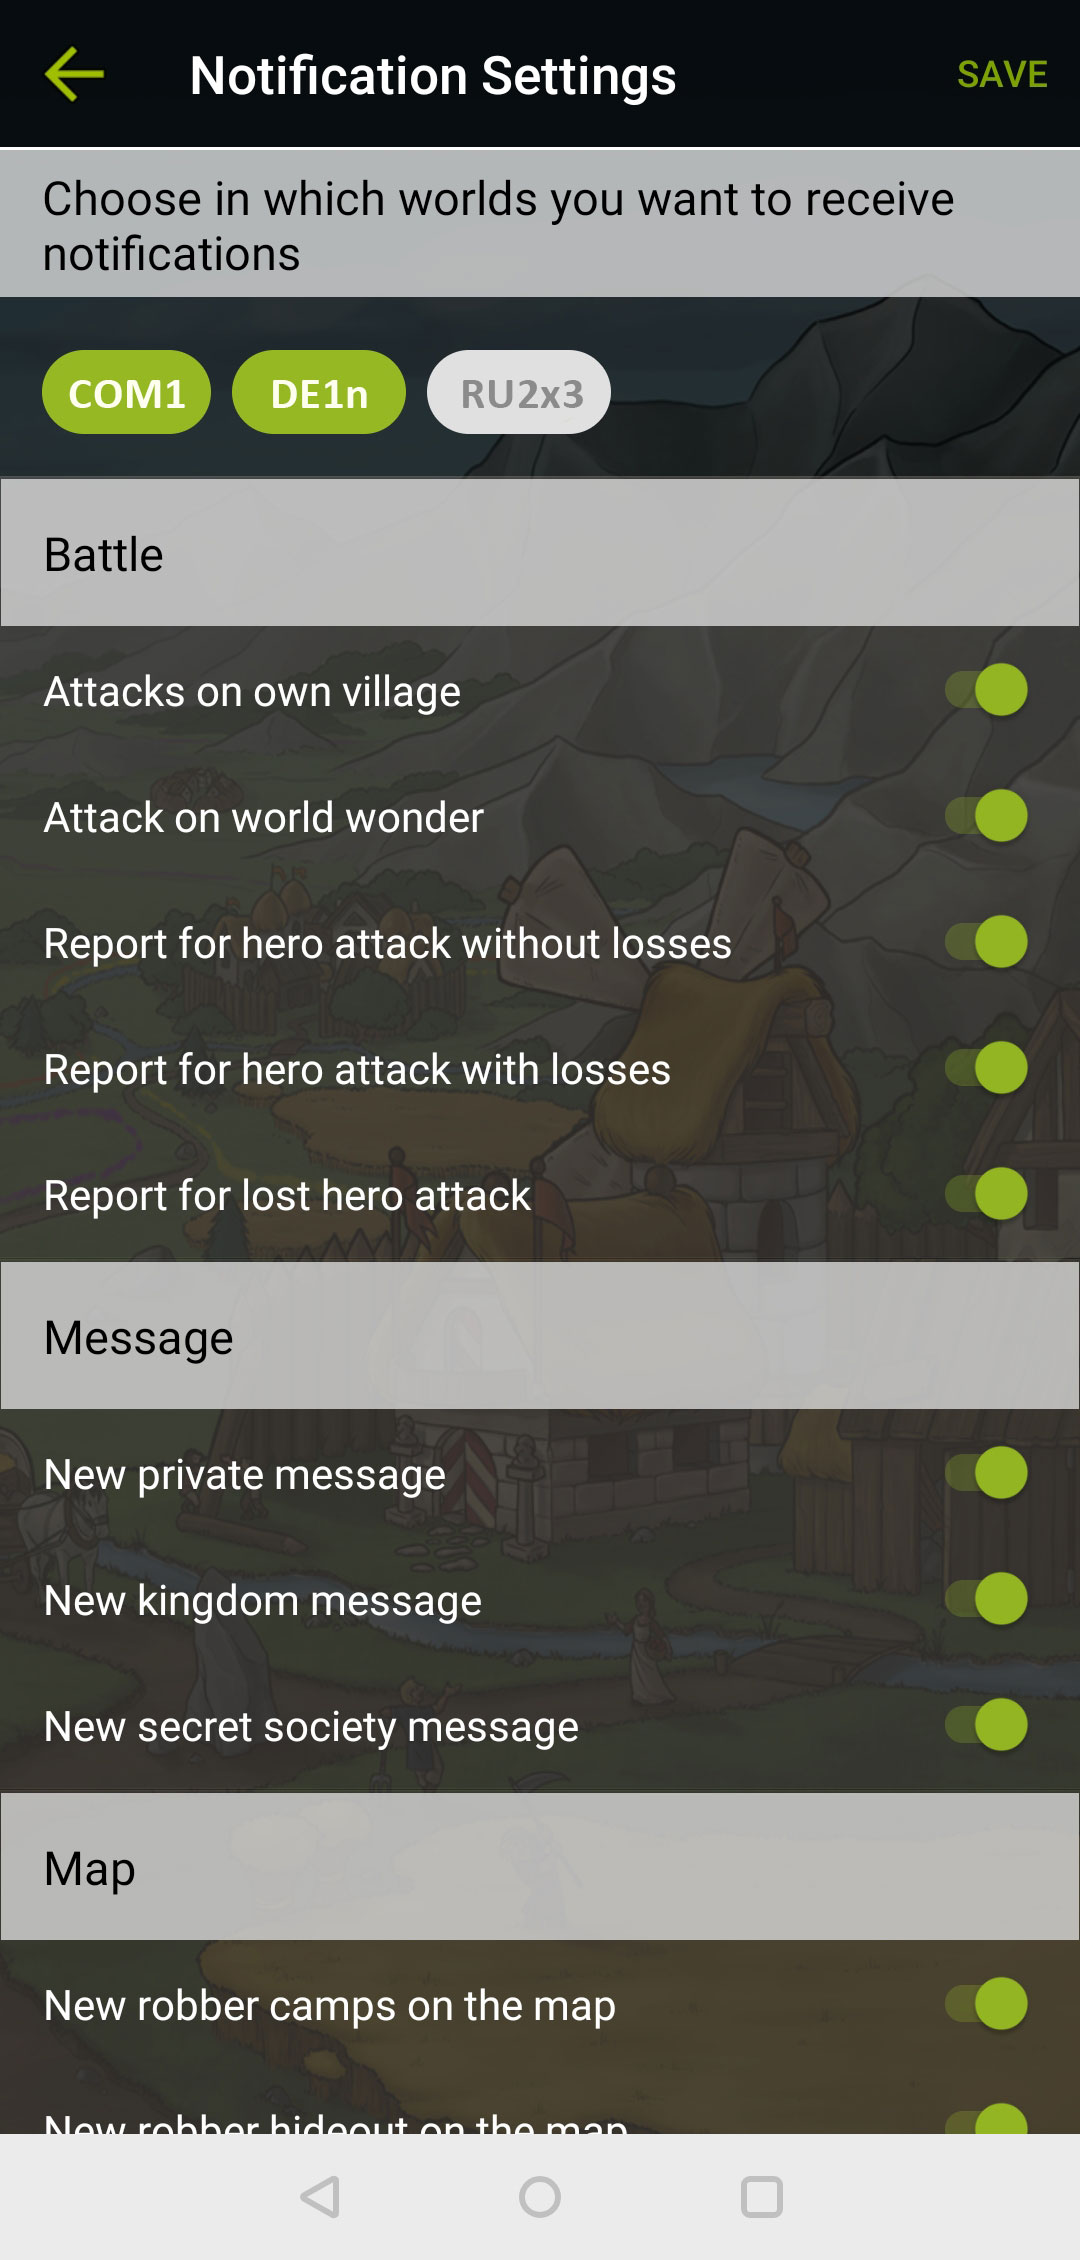 Settings menu in the Travian Kingdoms app, page 1